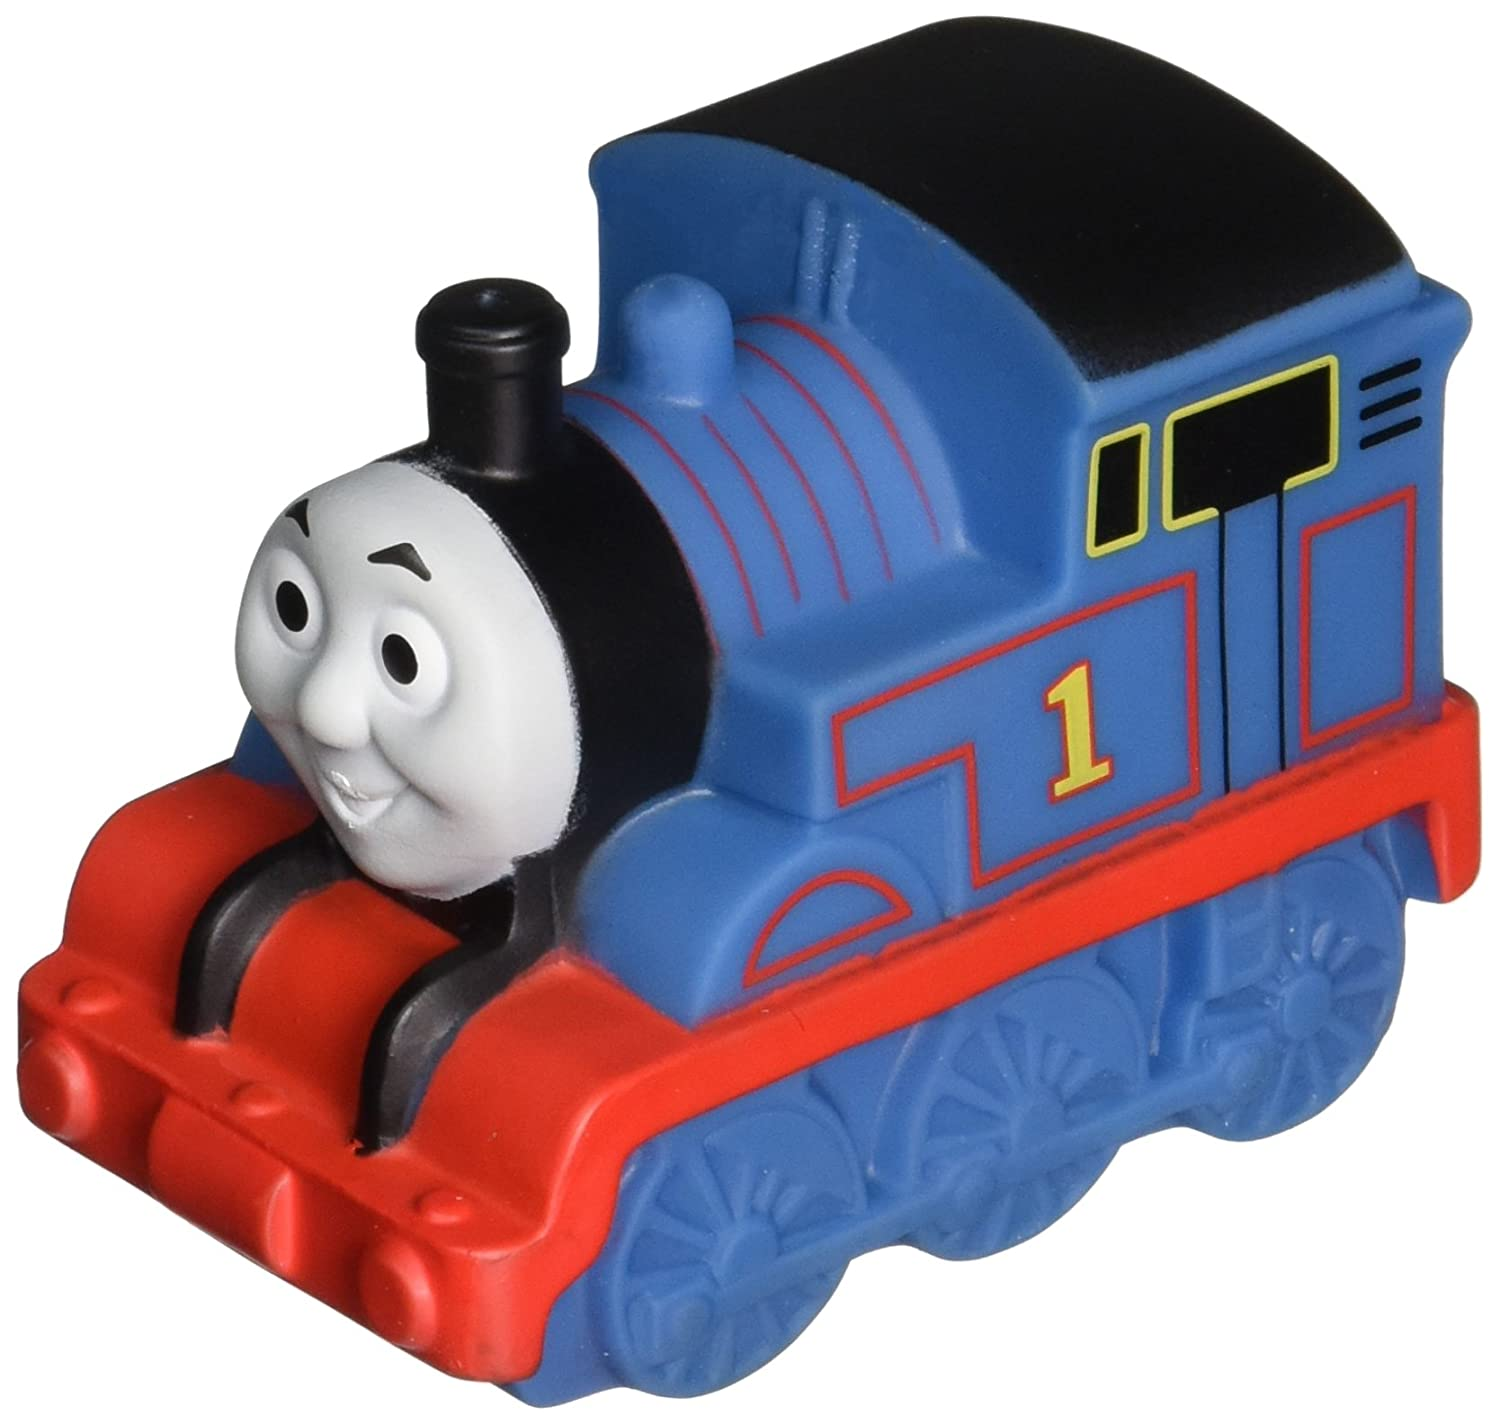 Amazon.com: Fisher-Price Thomas Bath Squirter, Single Pack (Colors ...